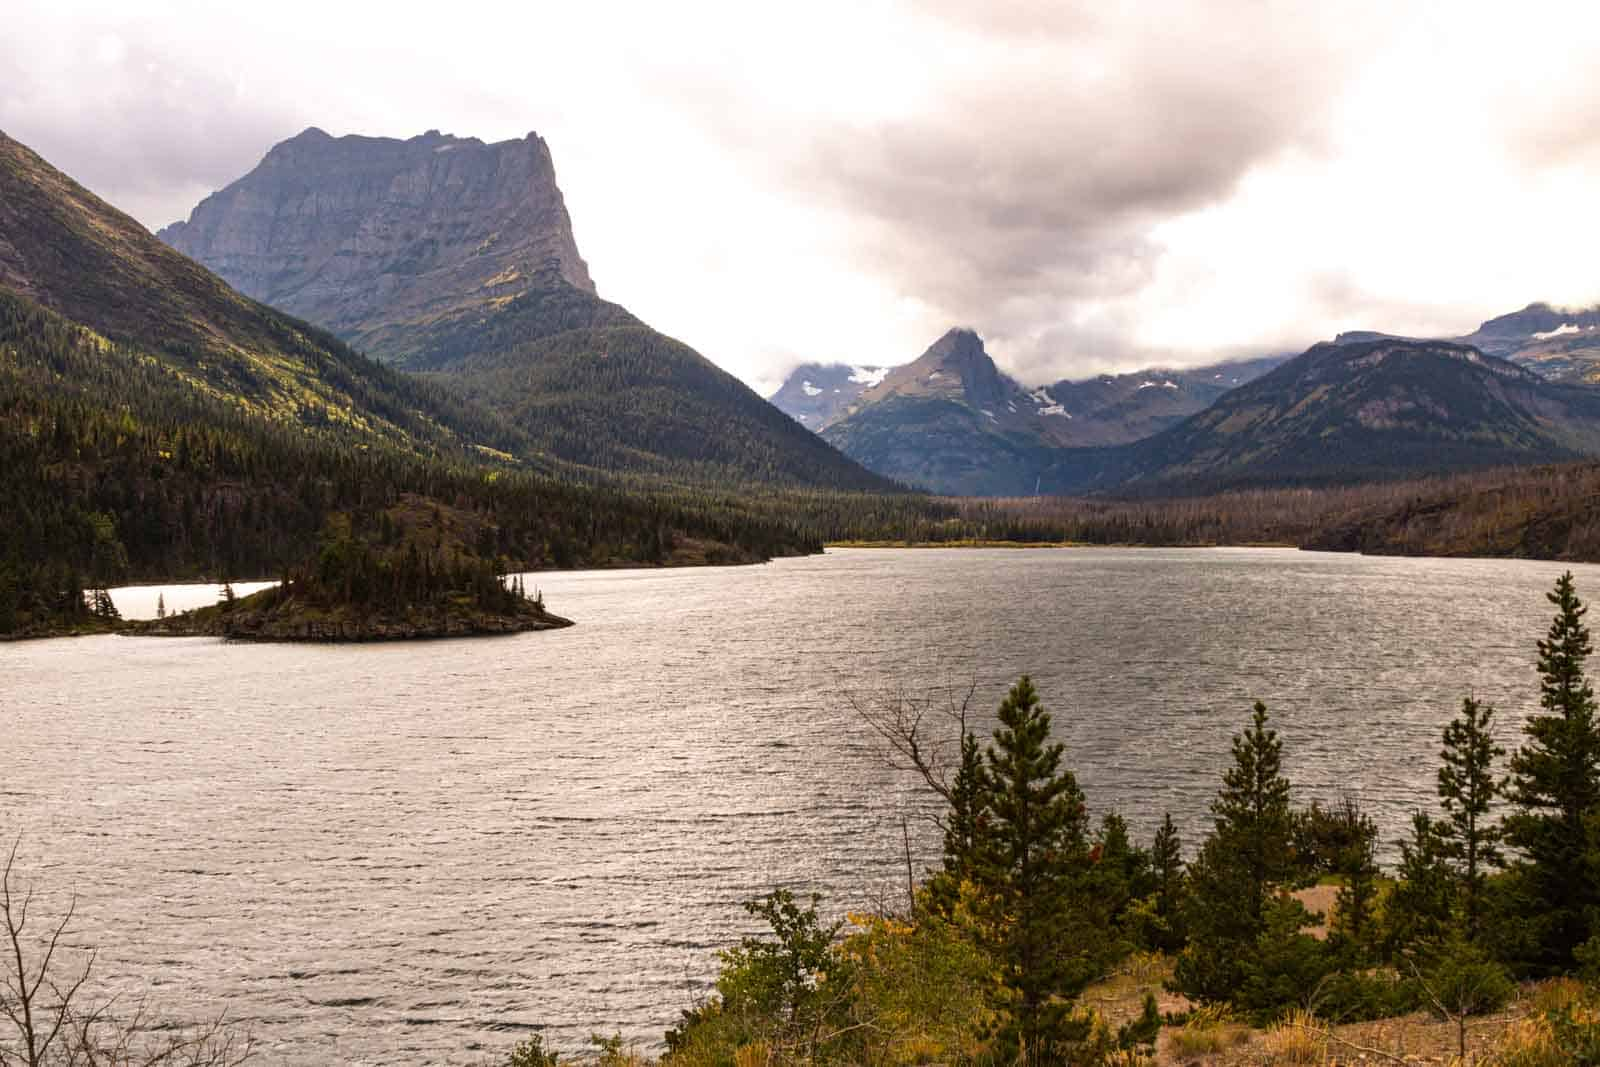 Visiting Sun Point is a great thing to do in Glacier National Park